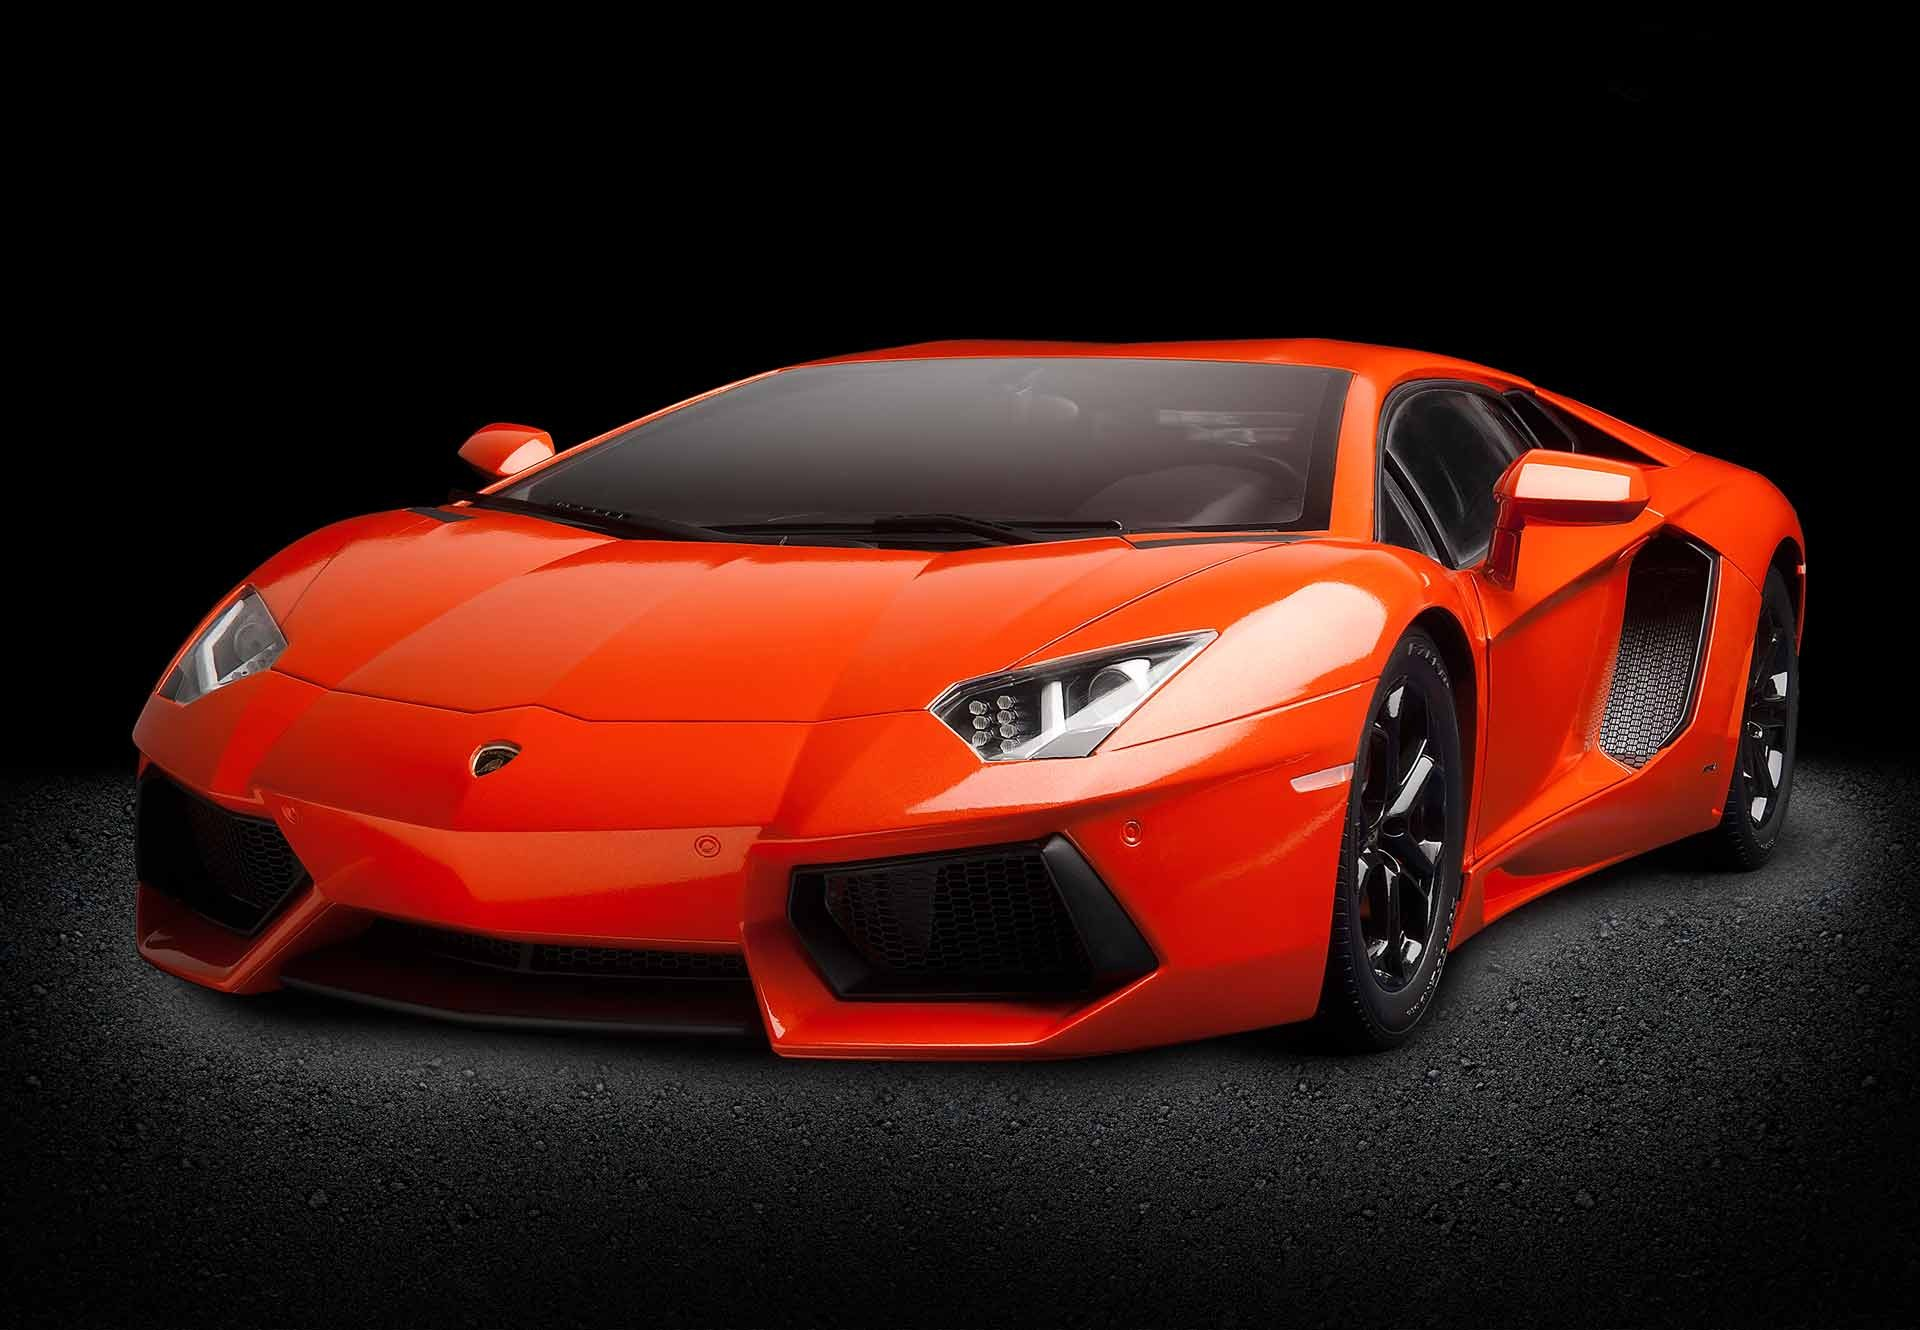 Pocher Lamborghini Aventador Orange Argos 1 8